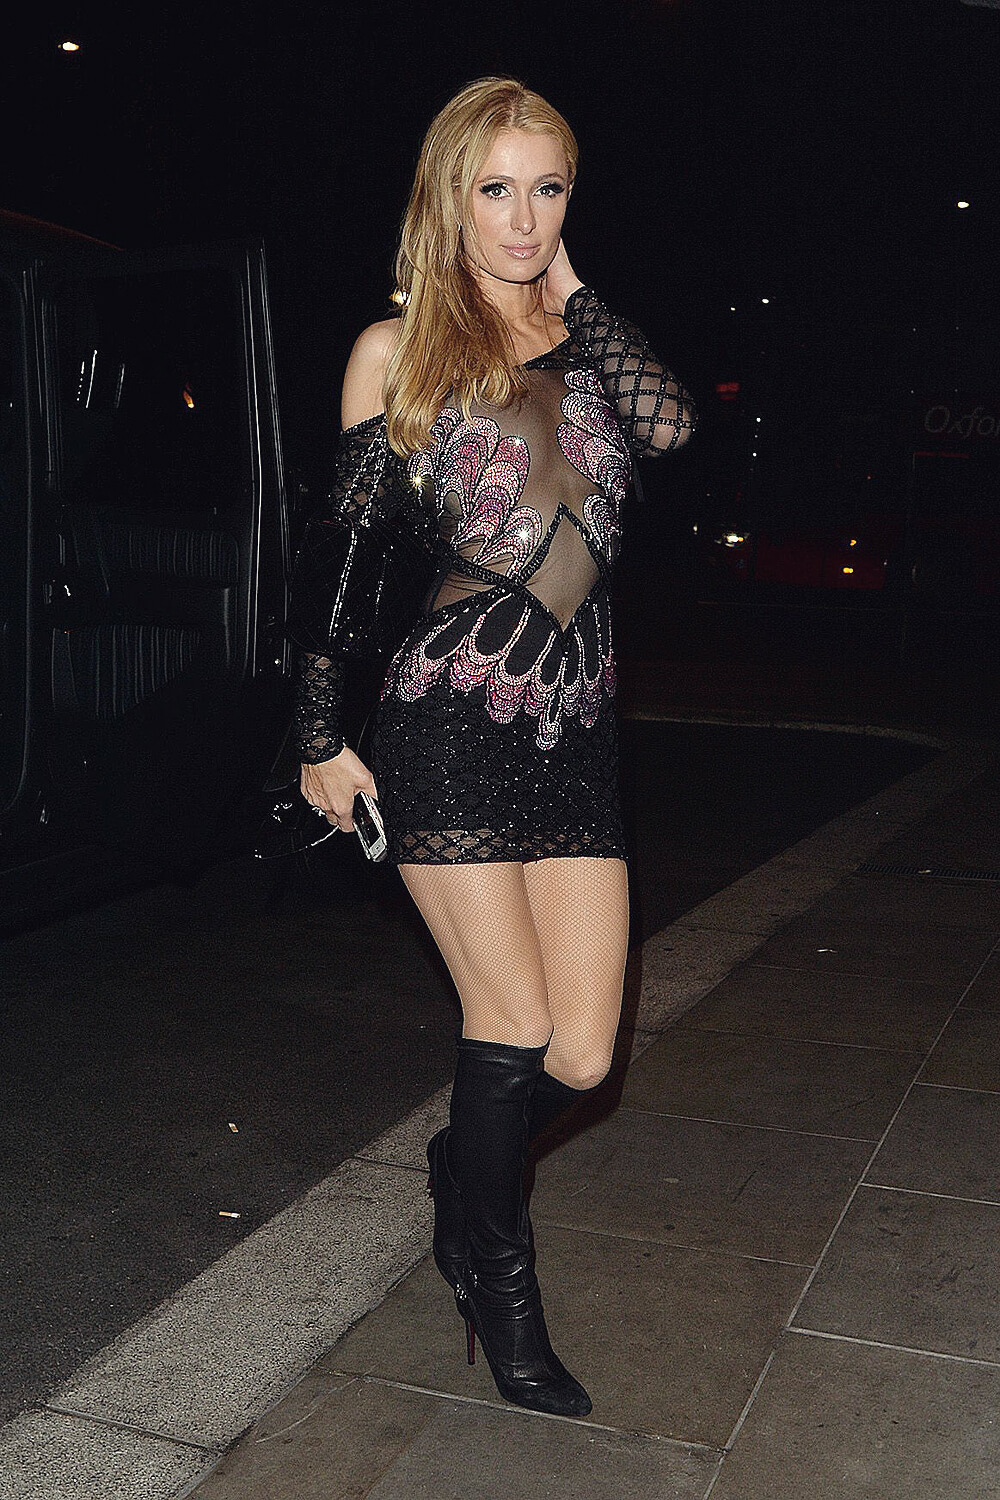 Paris Hilton Returns To Her Hotel After A Party Leather